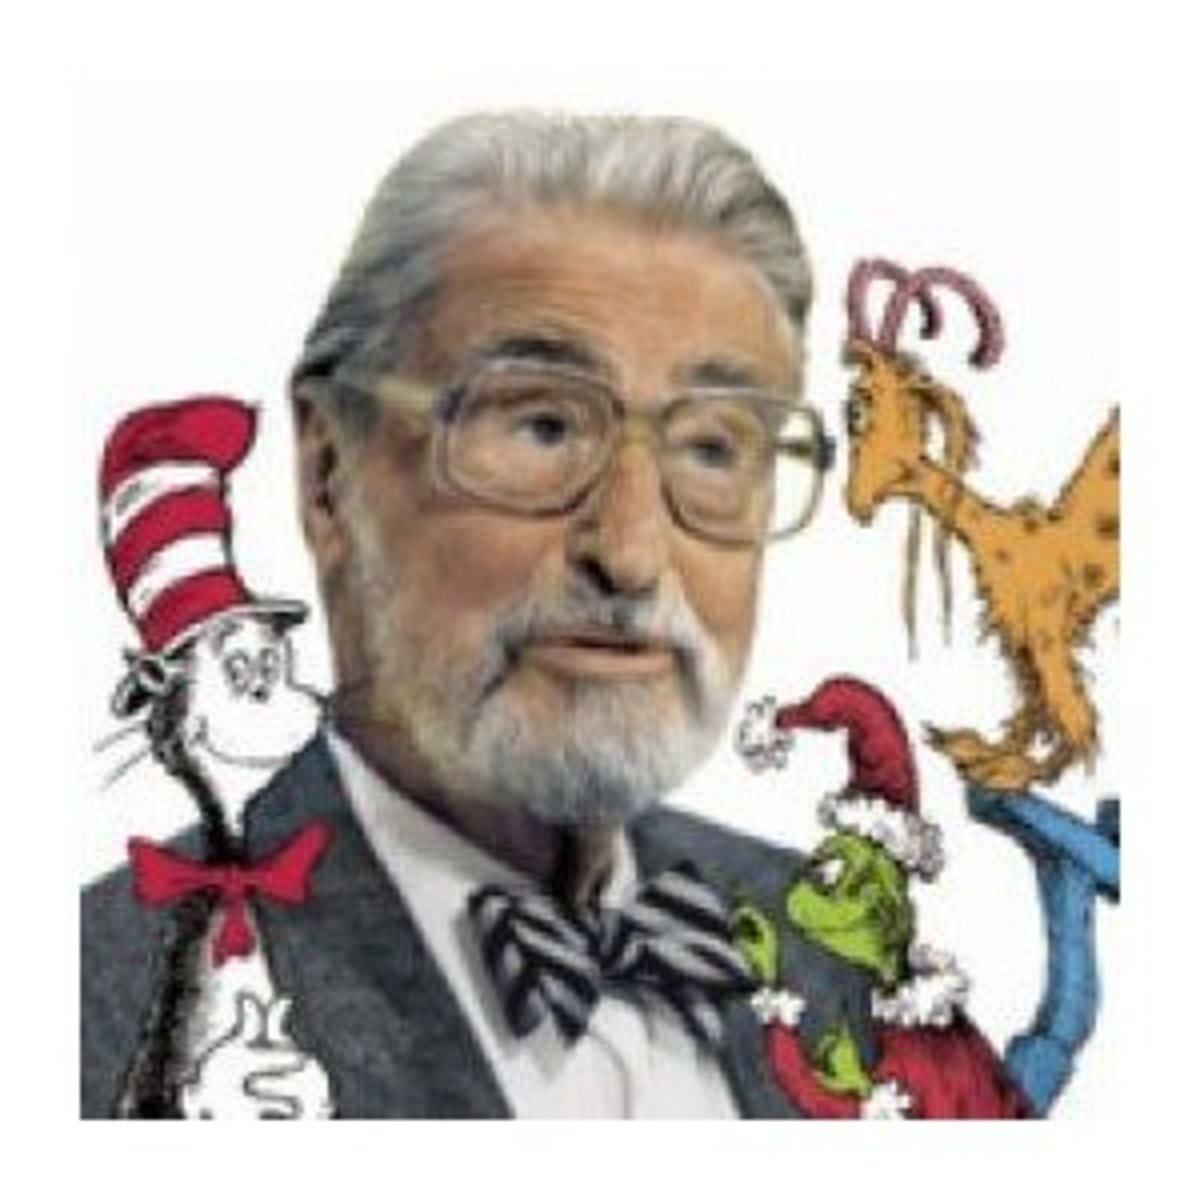 Dr. Seuss (Theodor Geisel) wrote the original book in 1957, basing the Grinch partly on himself.